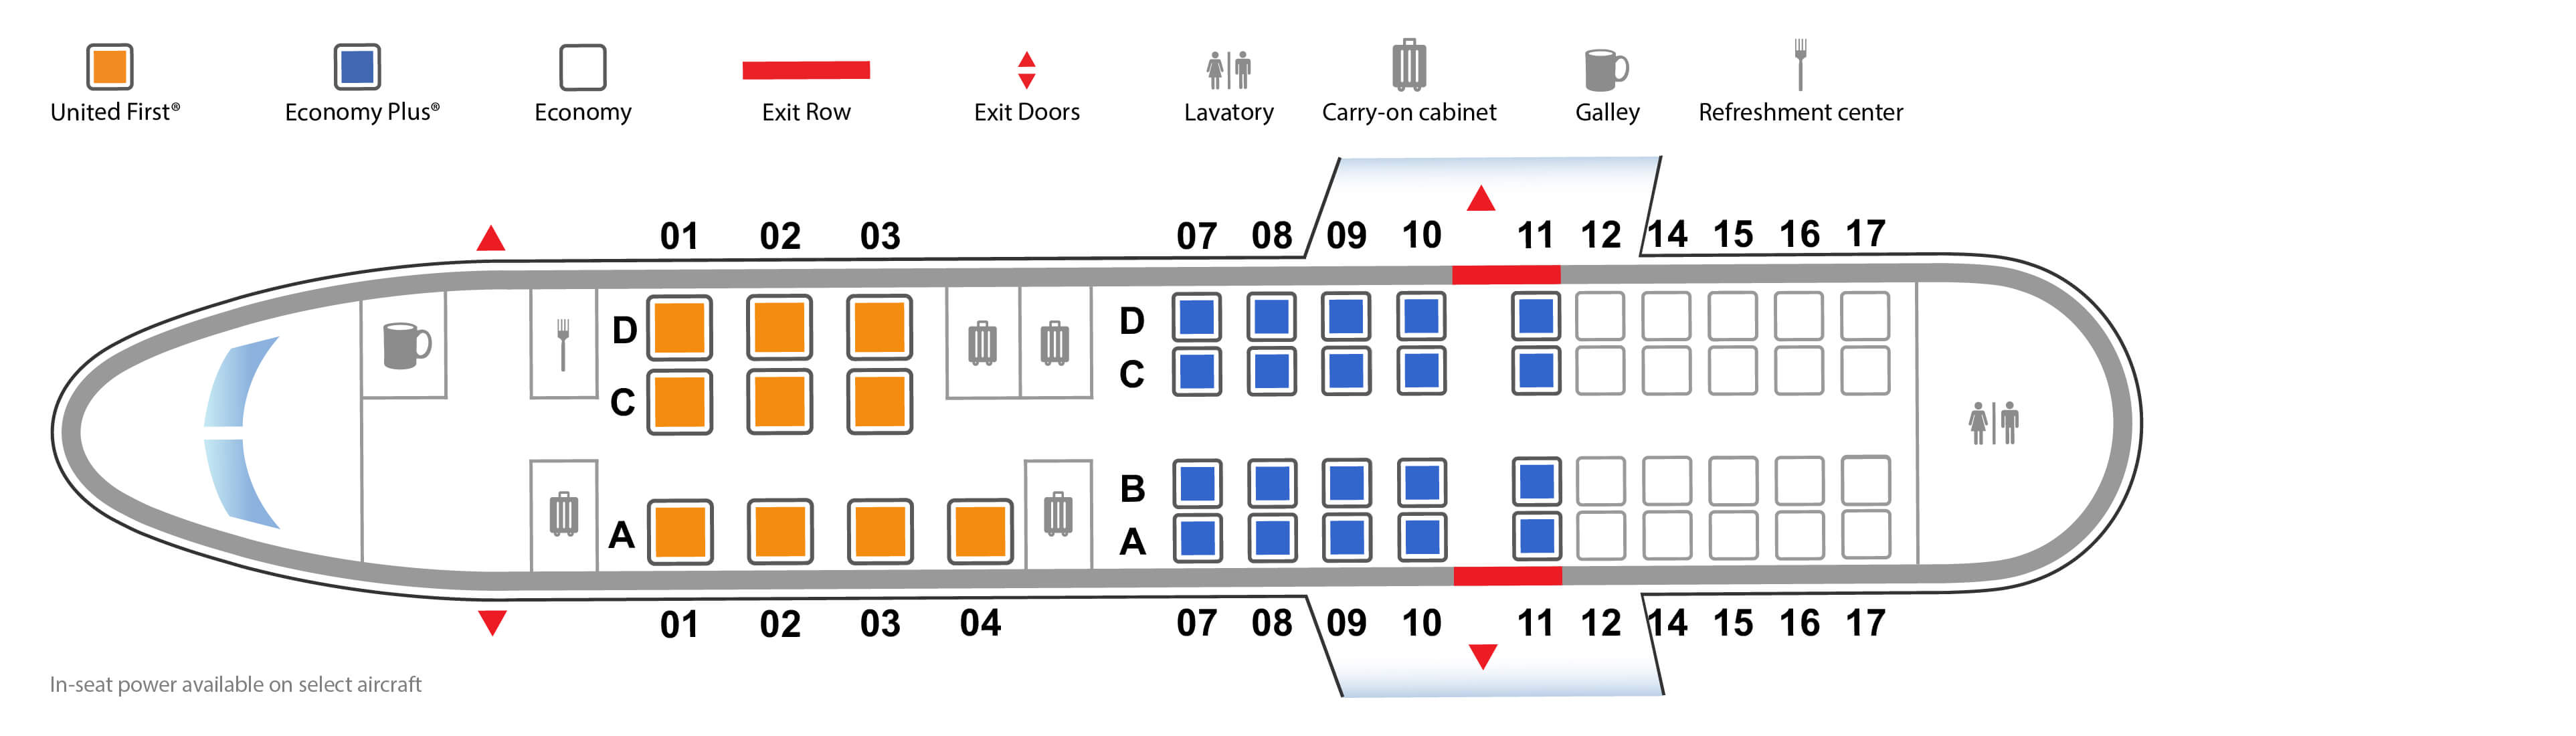 Bombardier CRJ 550 Seating map